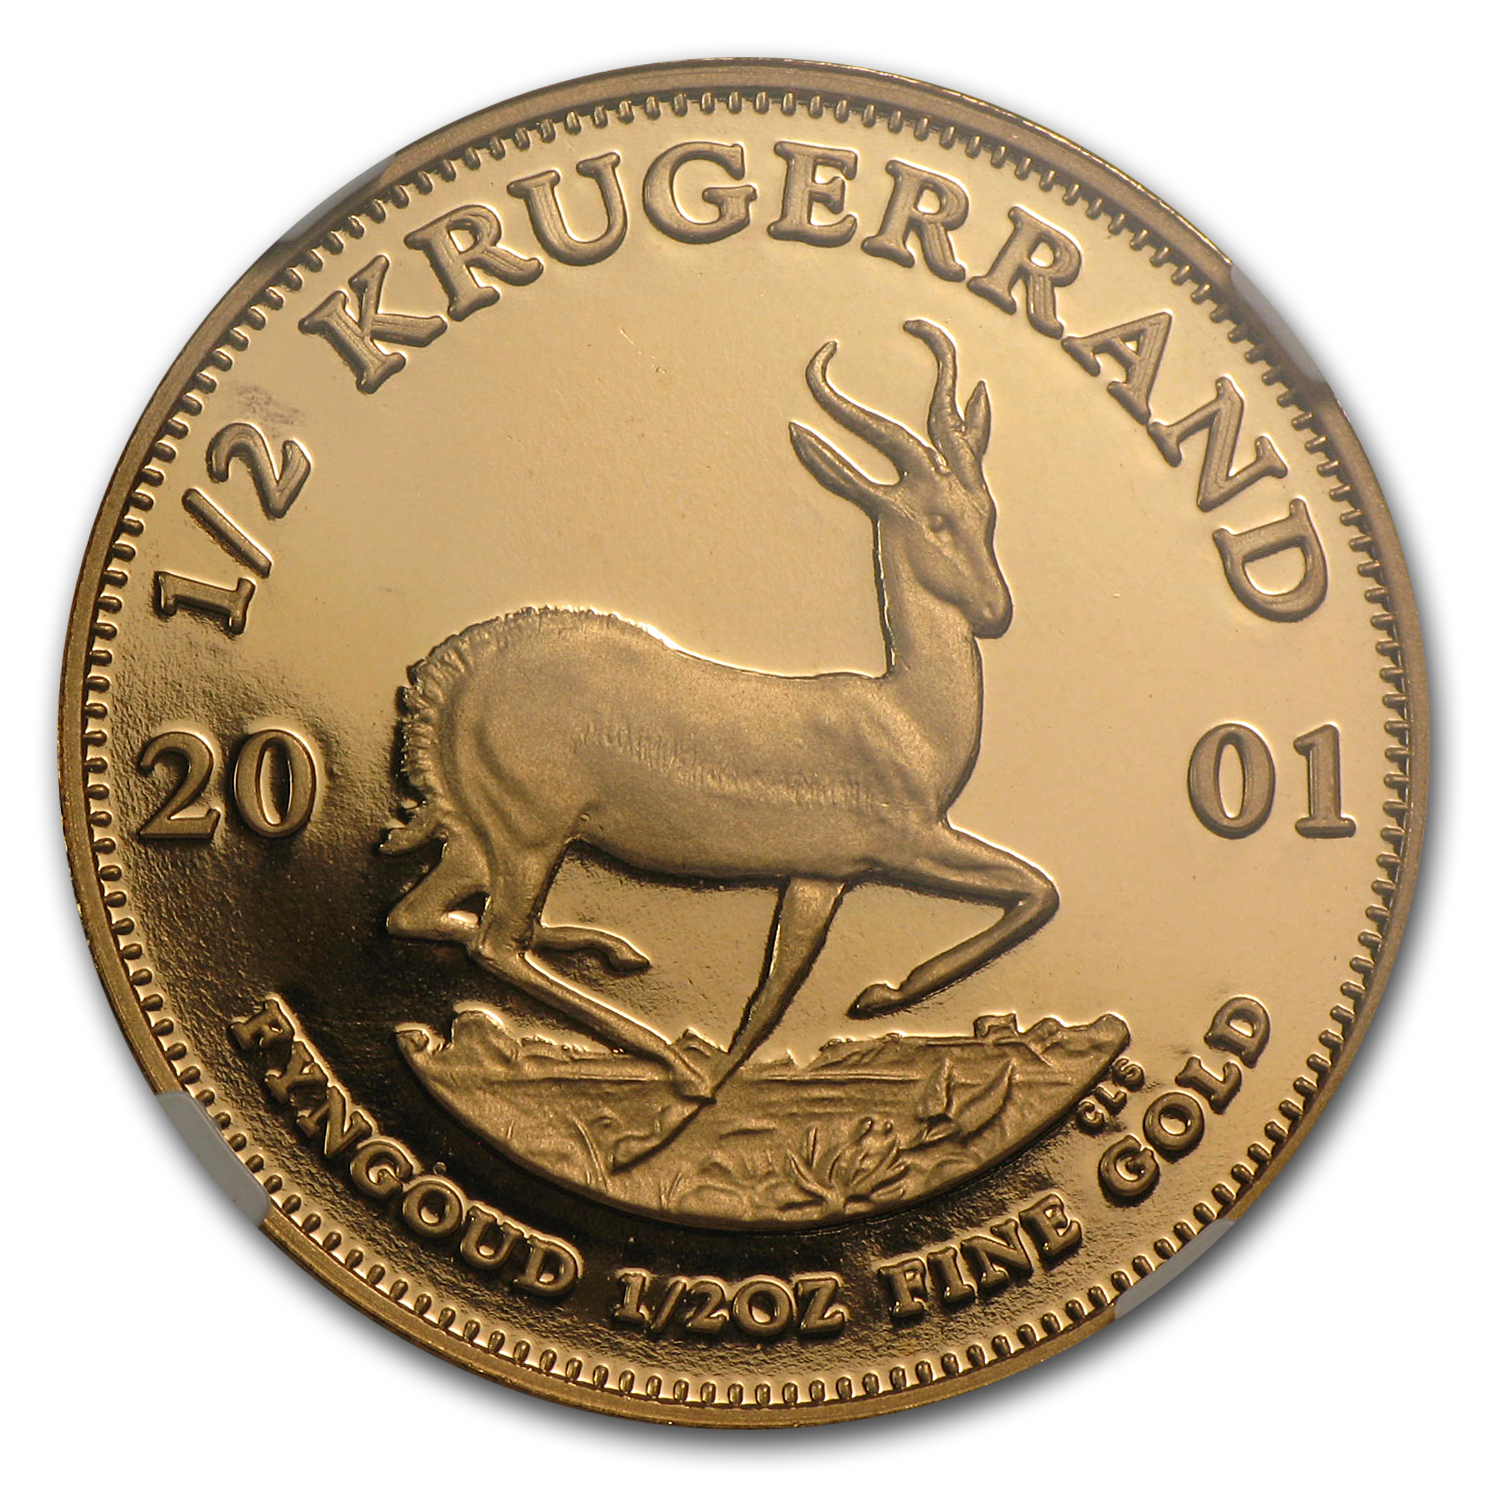 2001 South Africa 1/2 oz Gold Krugerrand PF-69 NGC